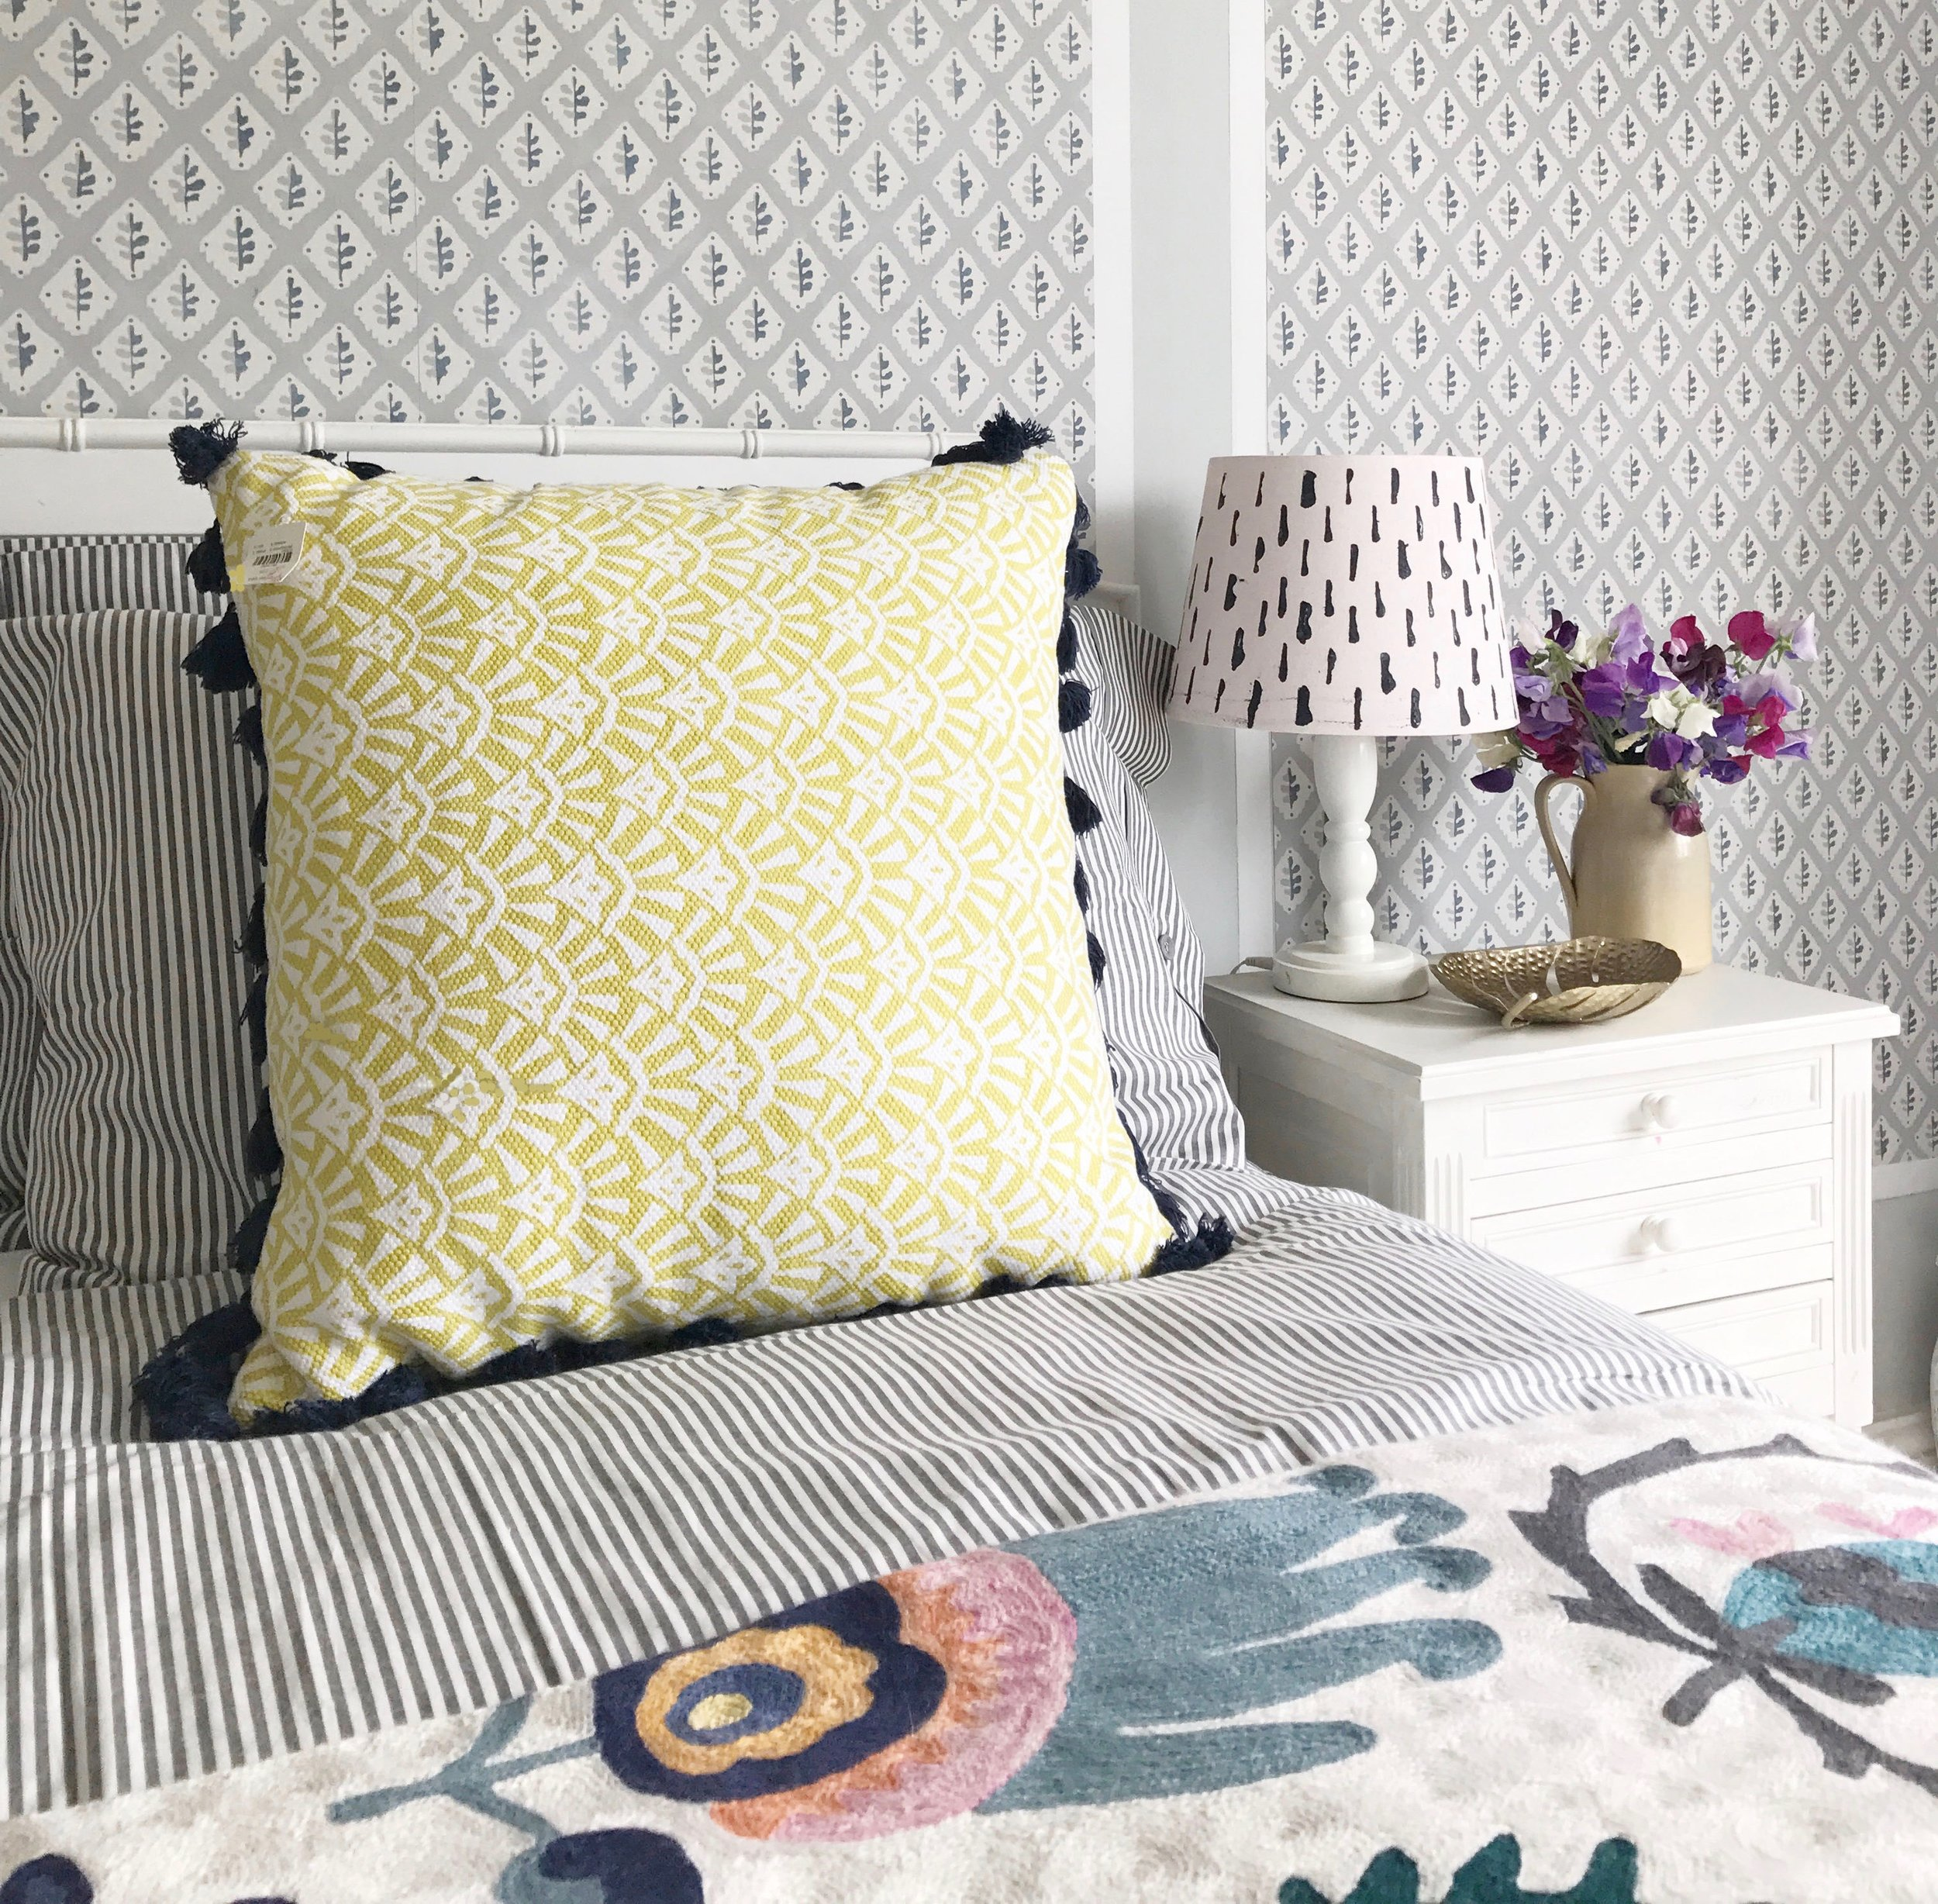 Ideas for adding colour to a light grey bedroom, add in pops of yellow and pink in your accessories with added pattern.